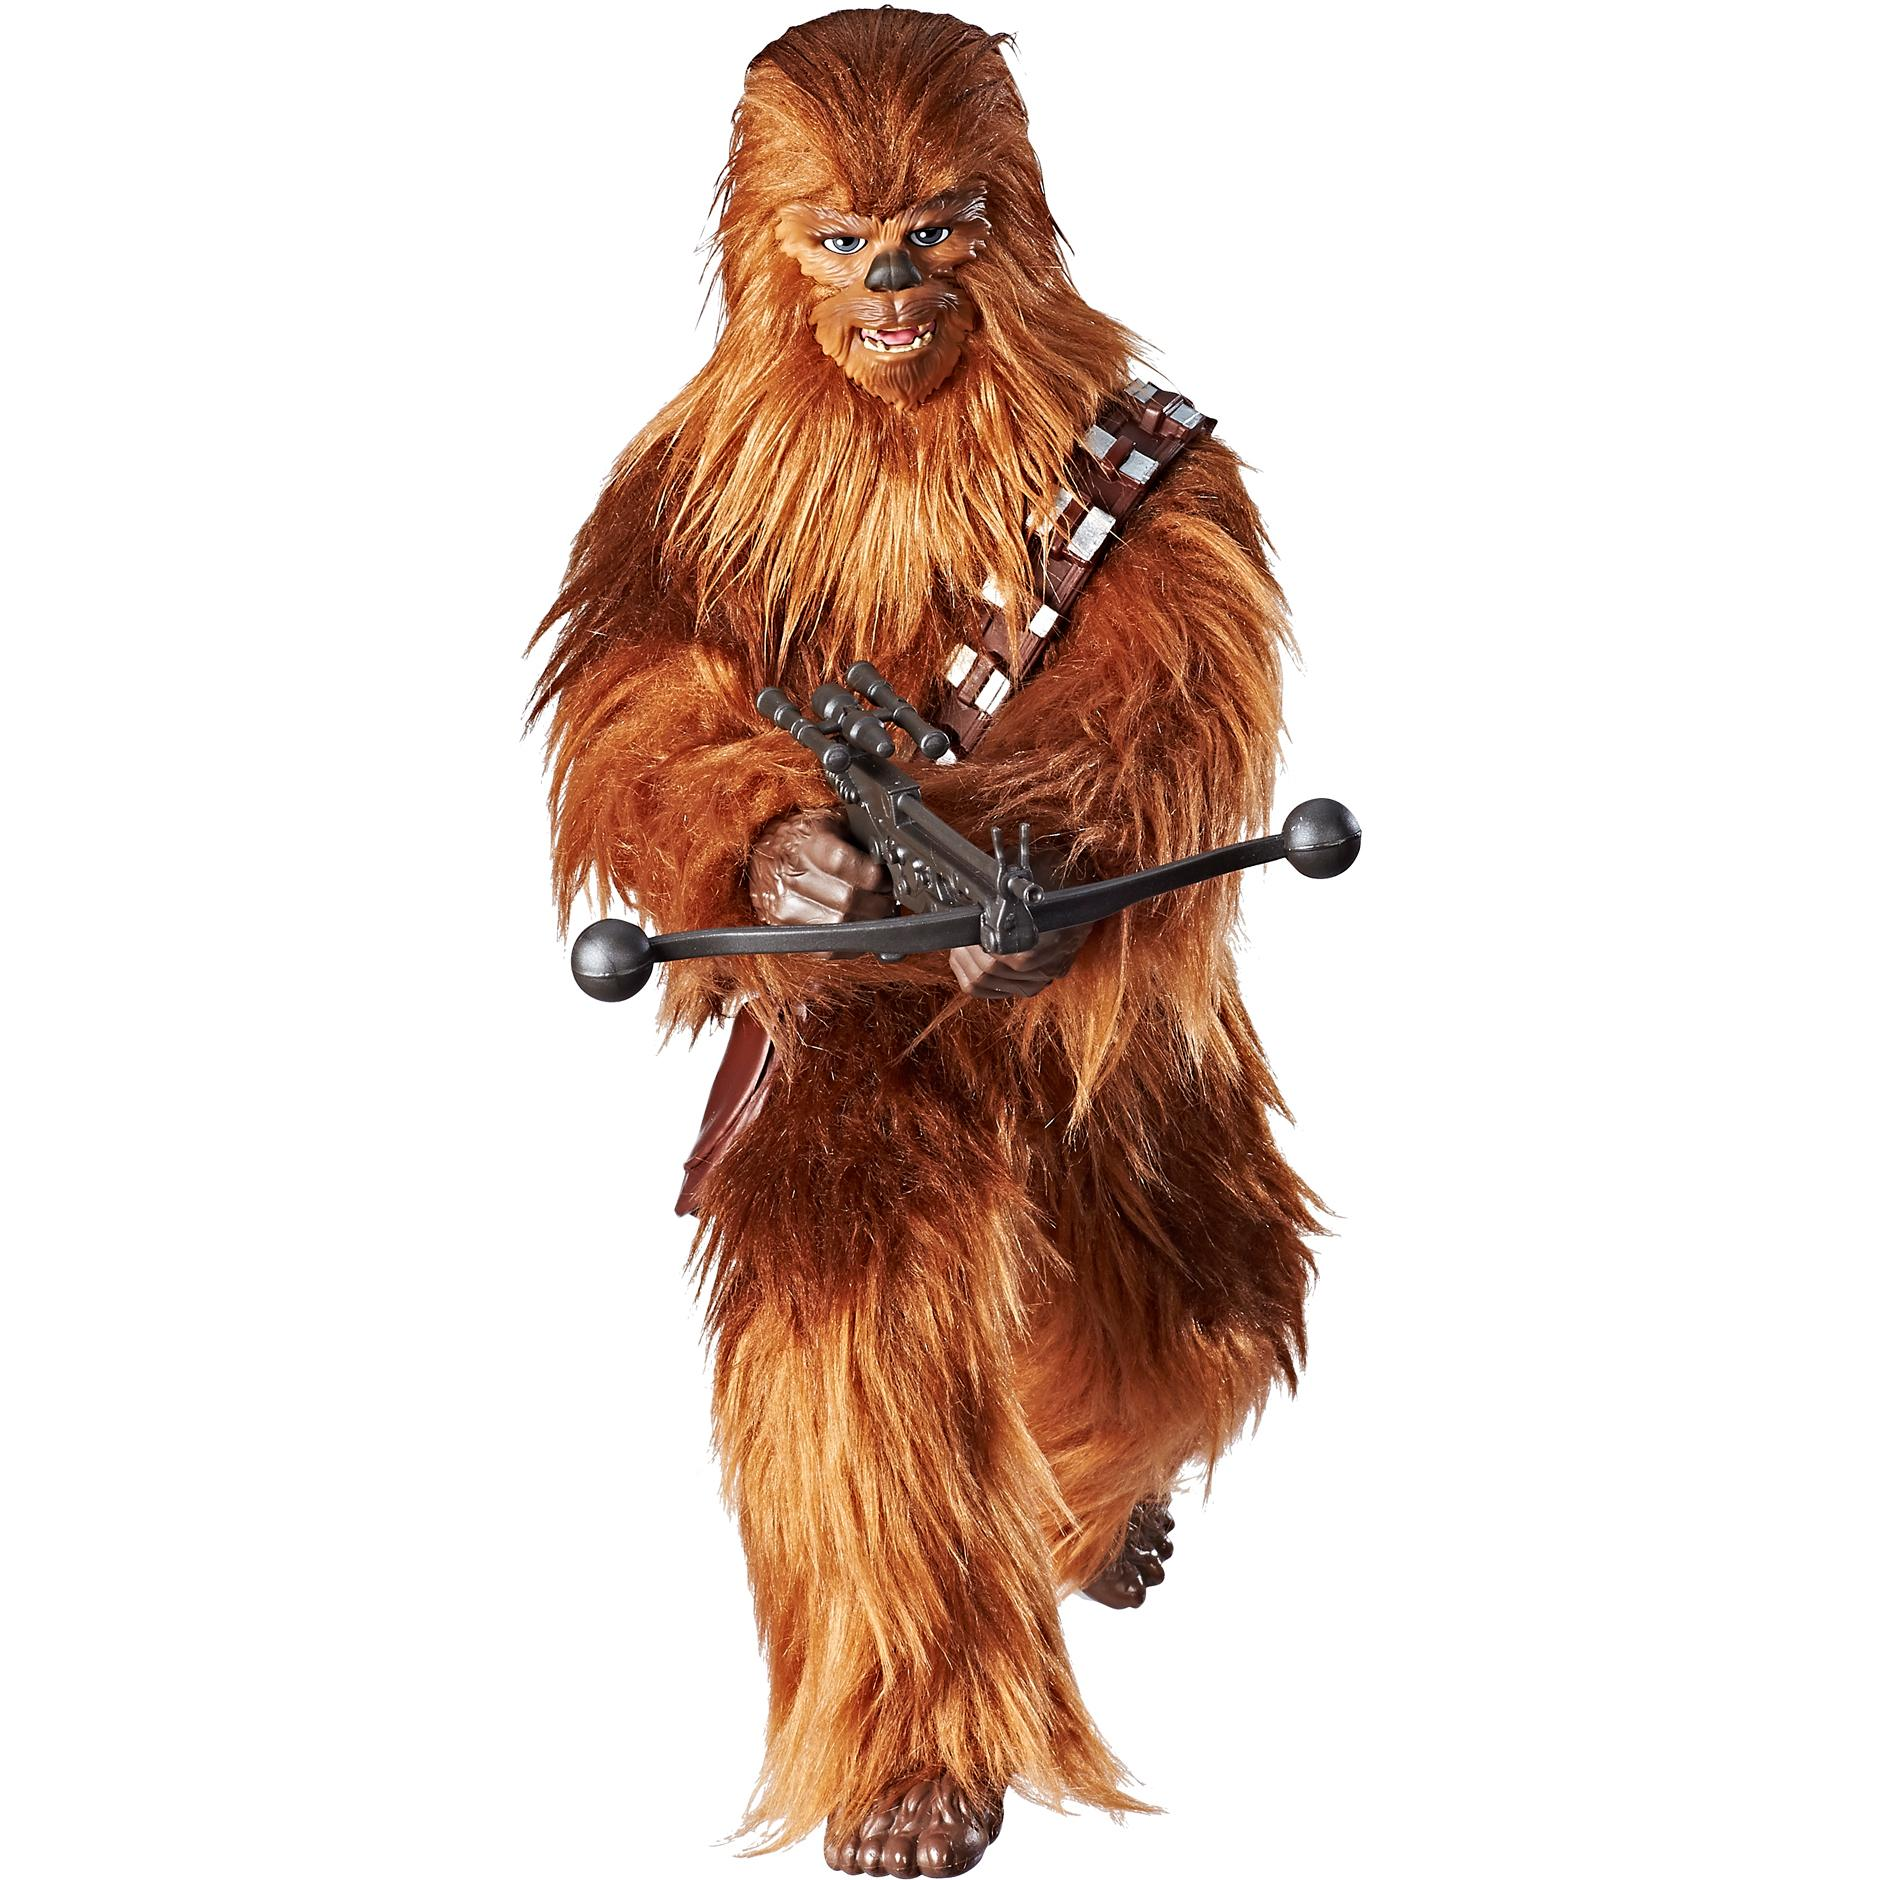 STAR WARS FORCES OF DESTINY ADVENTURE: Chewbacca (Photo: Hasbro)<p></p>